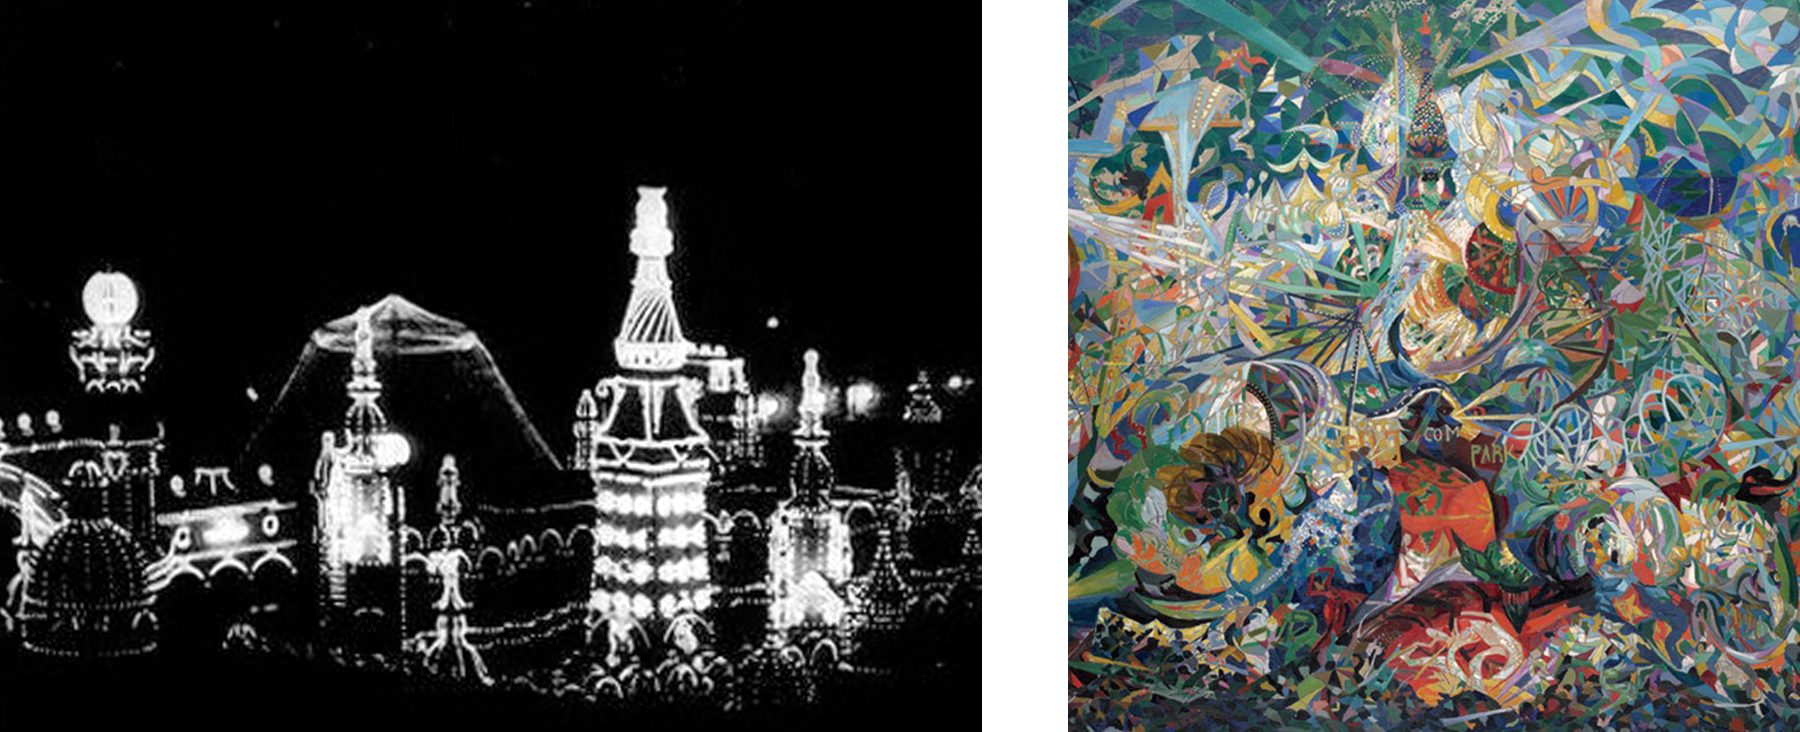 Two depictions of Luna Park. L: Film still, Coney Island at Night, 1905. Camera: Edwin S. Porter, The Edison Manufacturing Company. R: Joseph Stella, Battle of Lights, Coney Island, Mardi Gras, 1913-1914. Oil on canvas, 77 x 84 3/4 in. Yale University Art Gallery, New Haven, CT